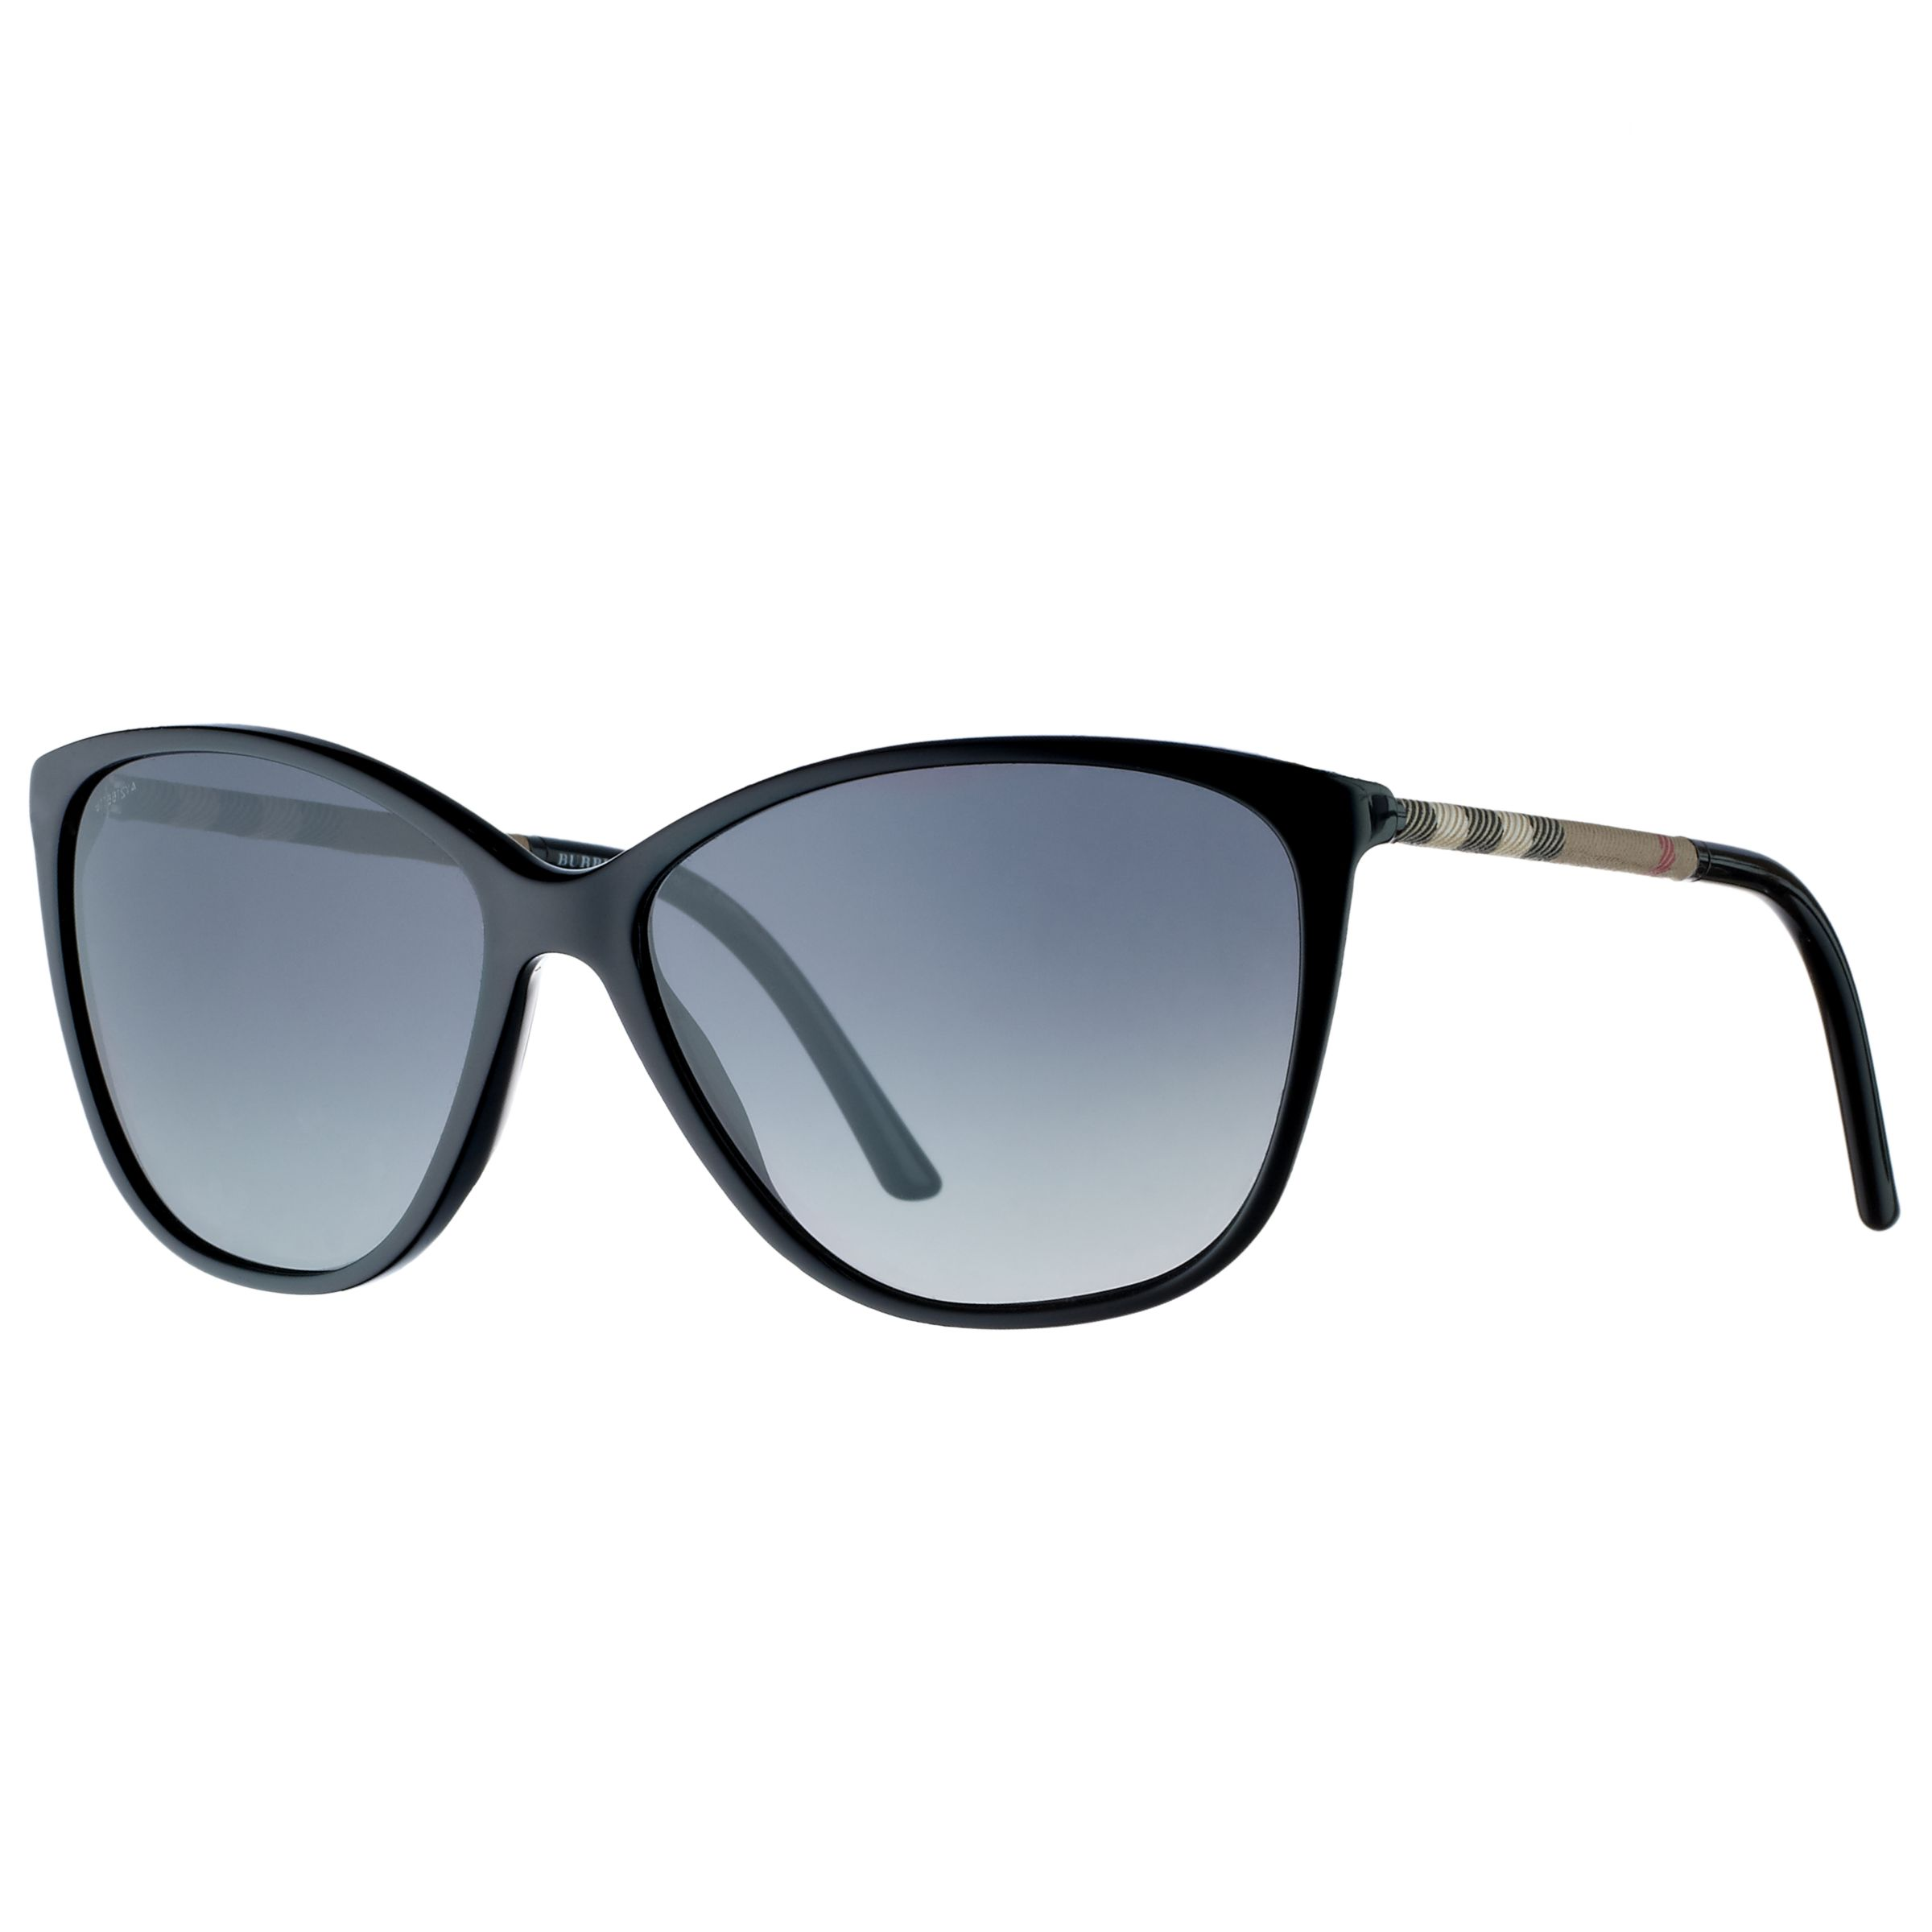 Burberry Cat's Eye Sunglasses, Black, Black